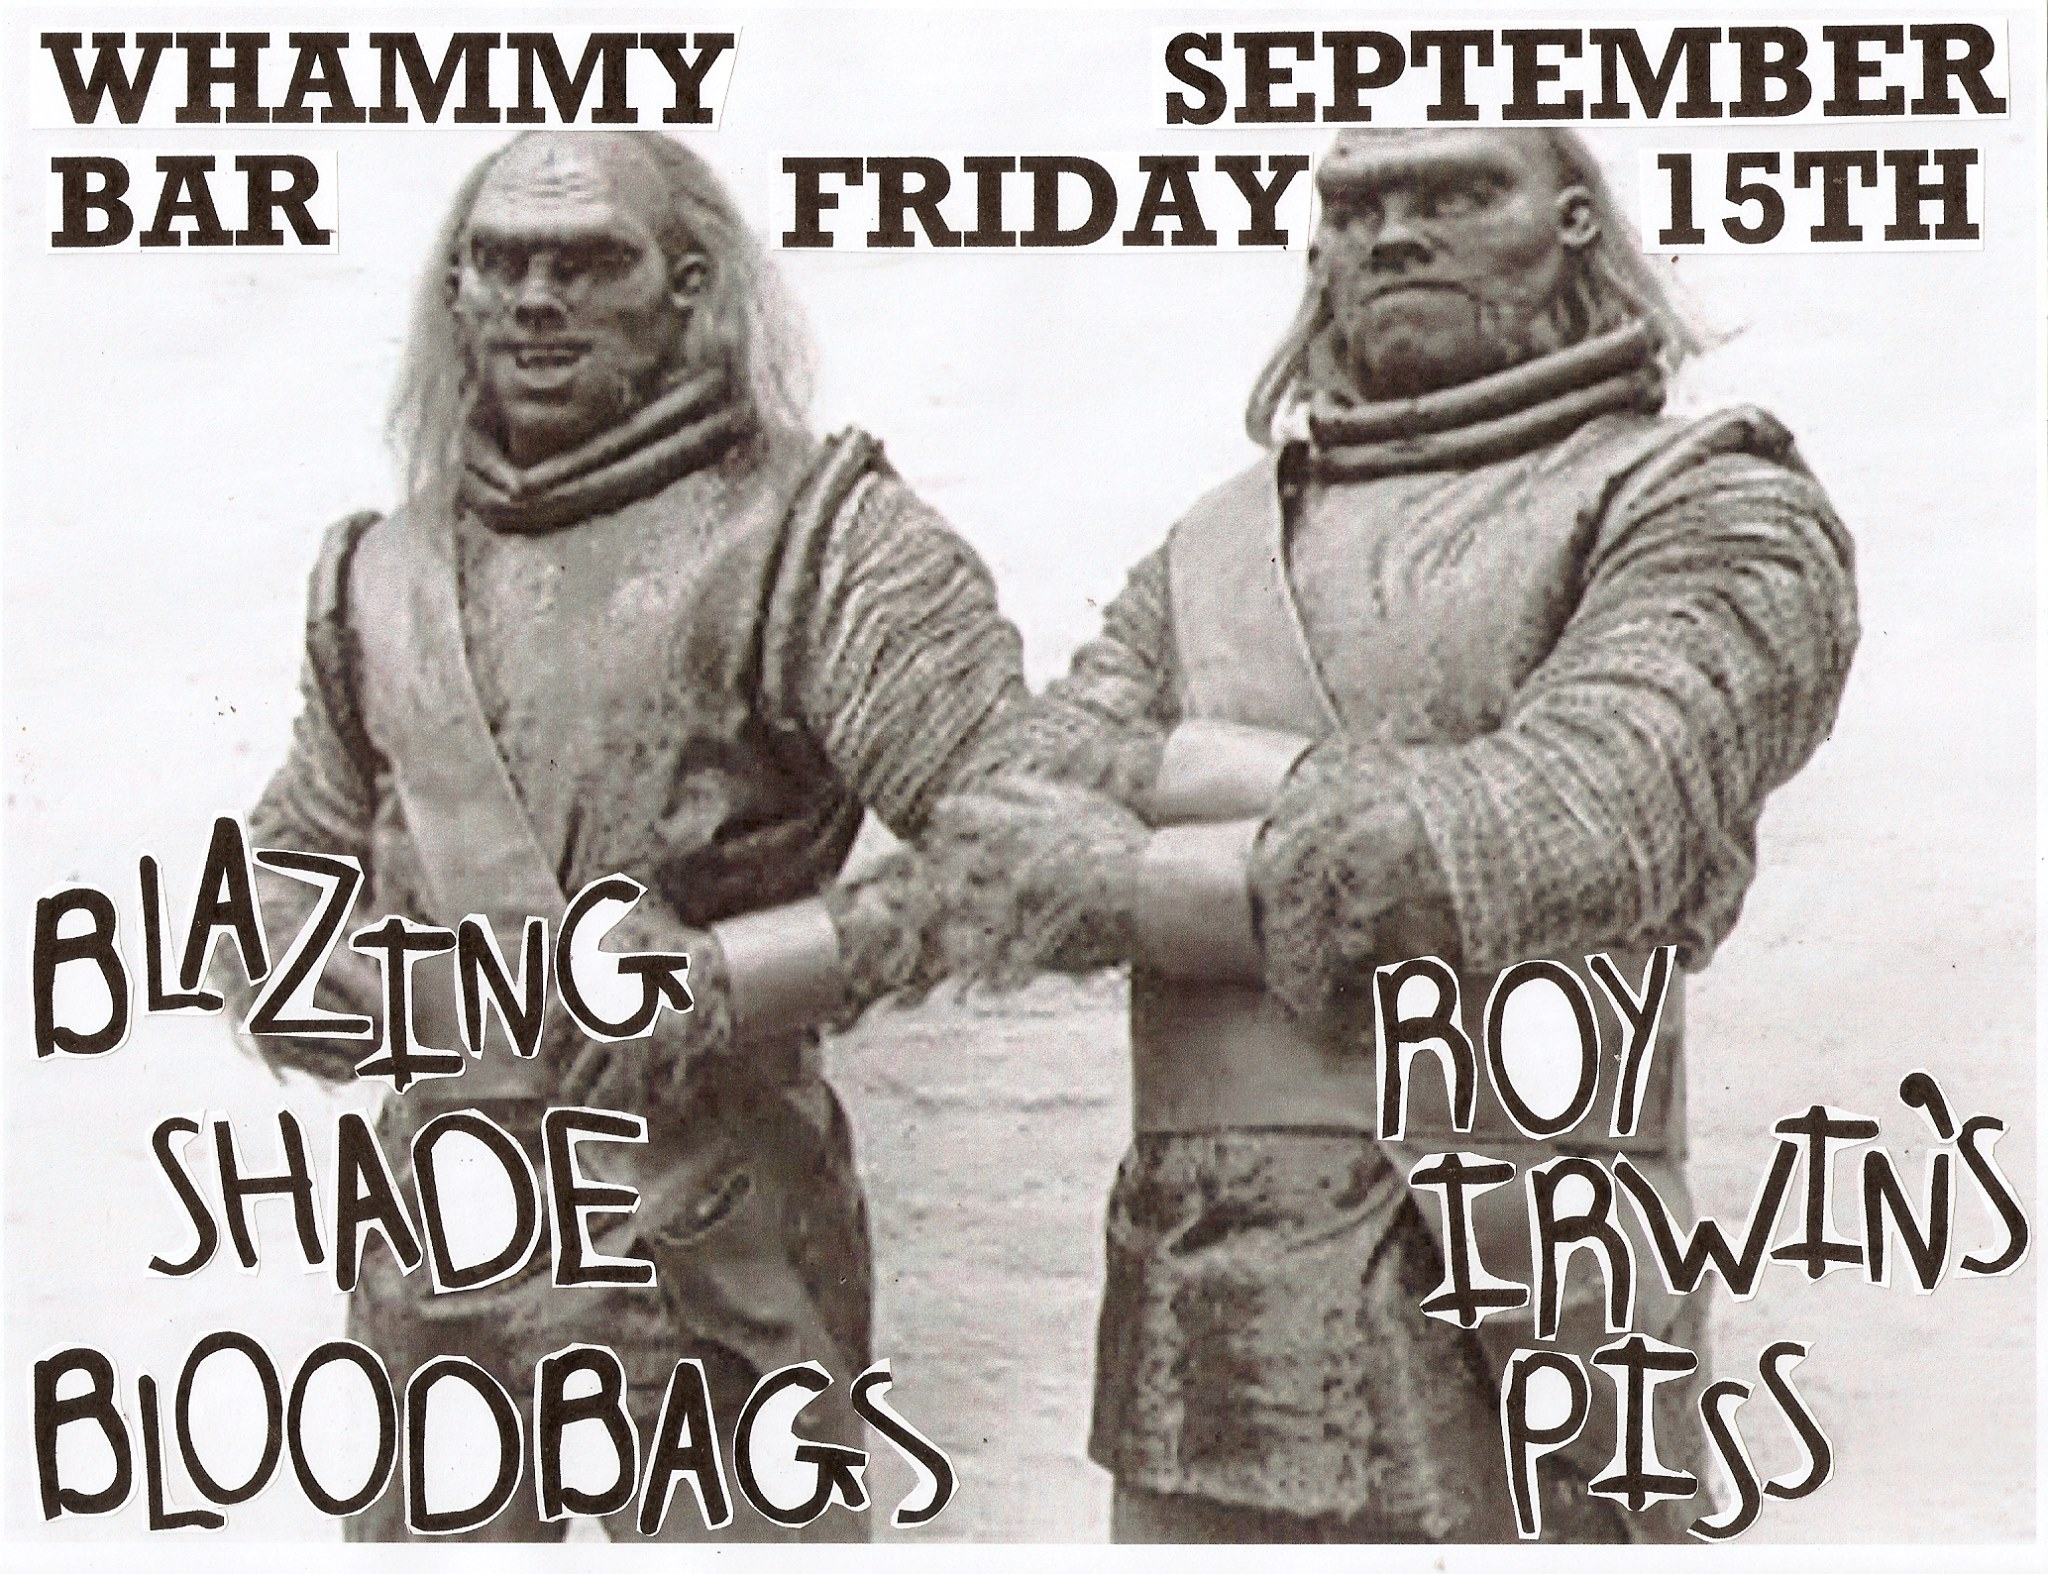 Bloodbags, Blazing Shade and Roy Irwin's Piss